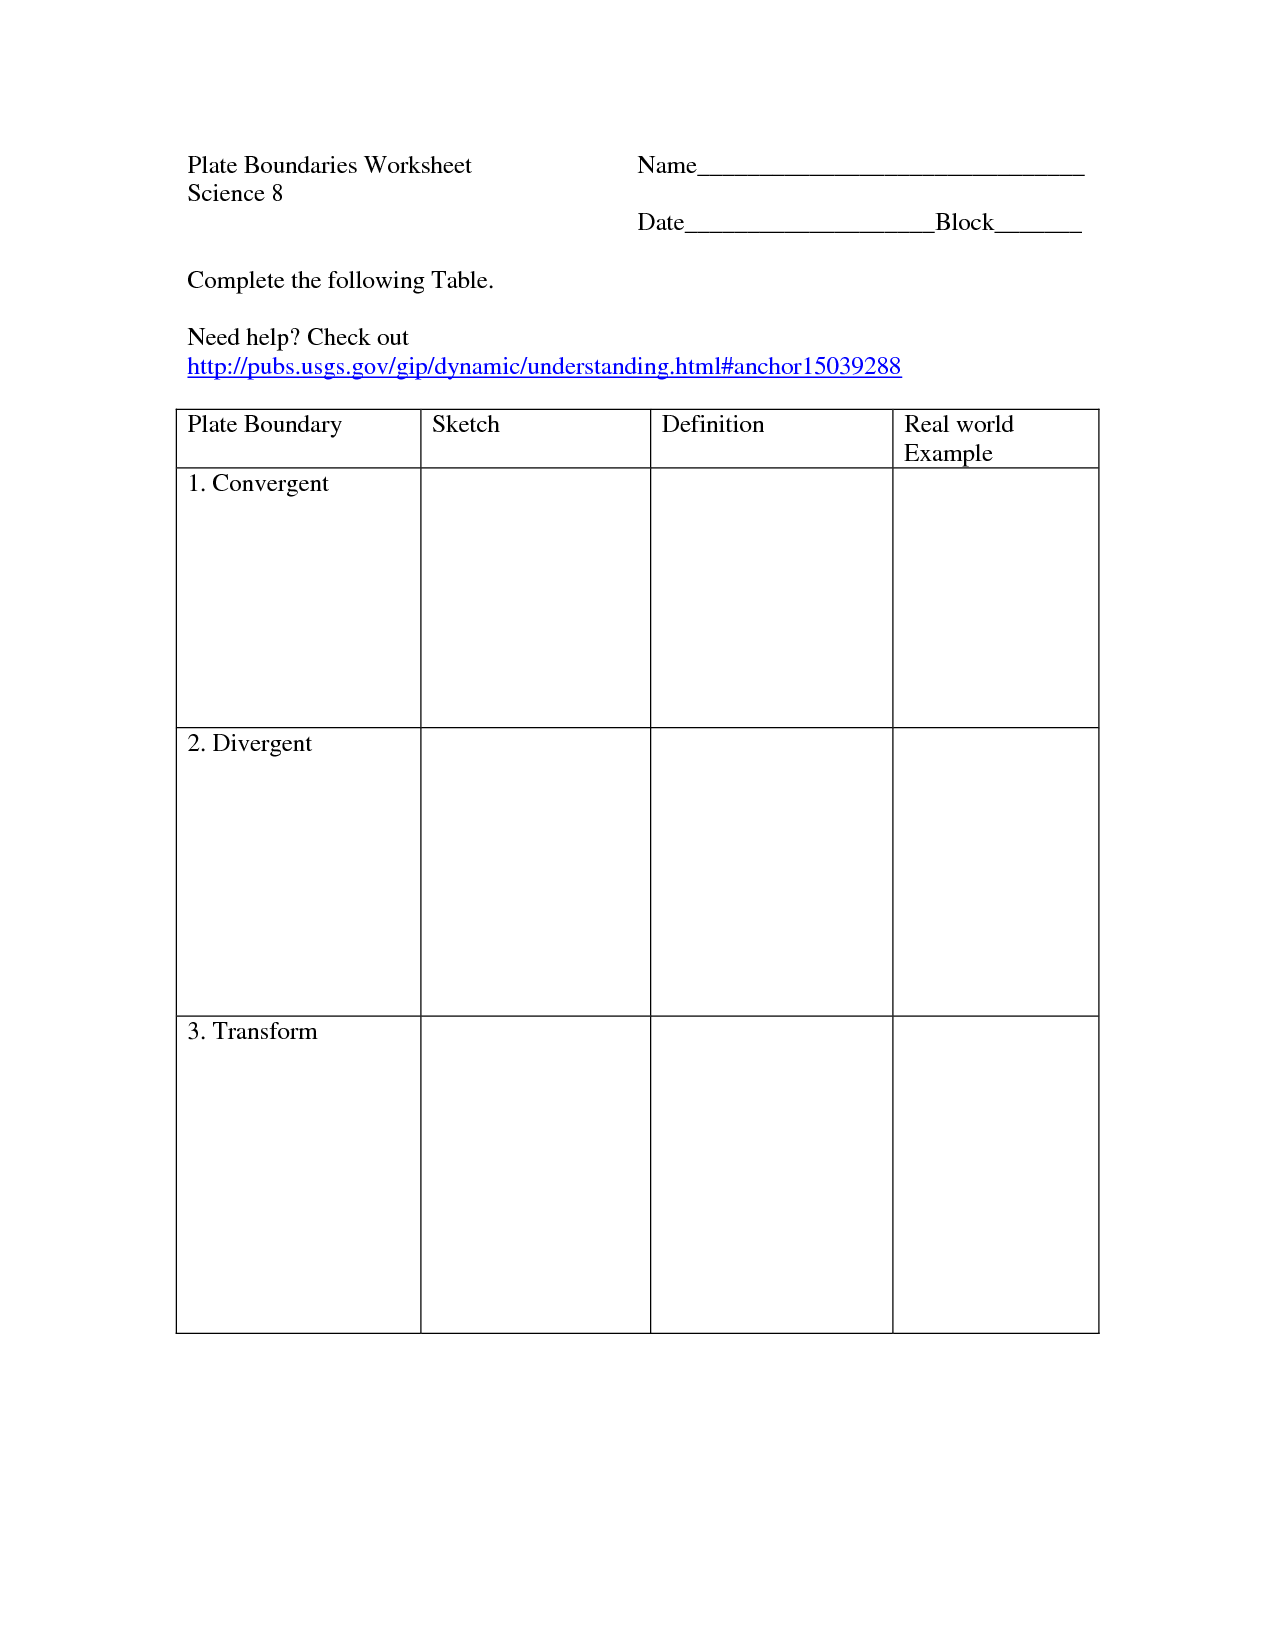 Understanding Boundaries Worksheet